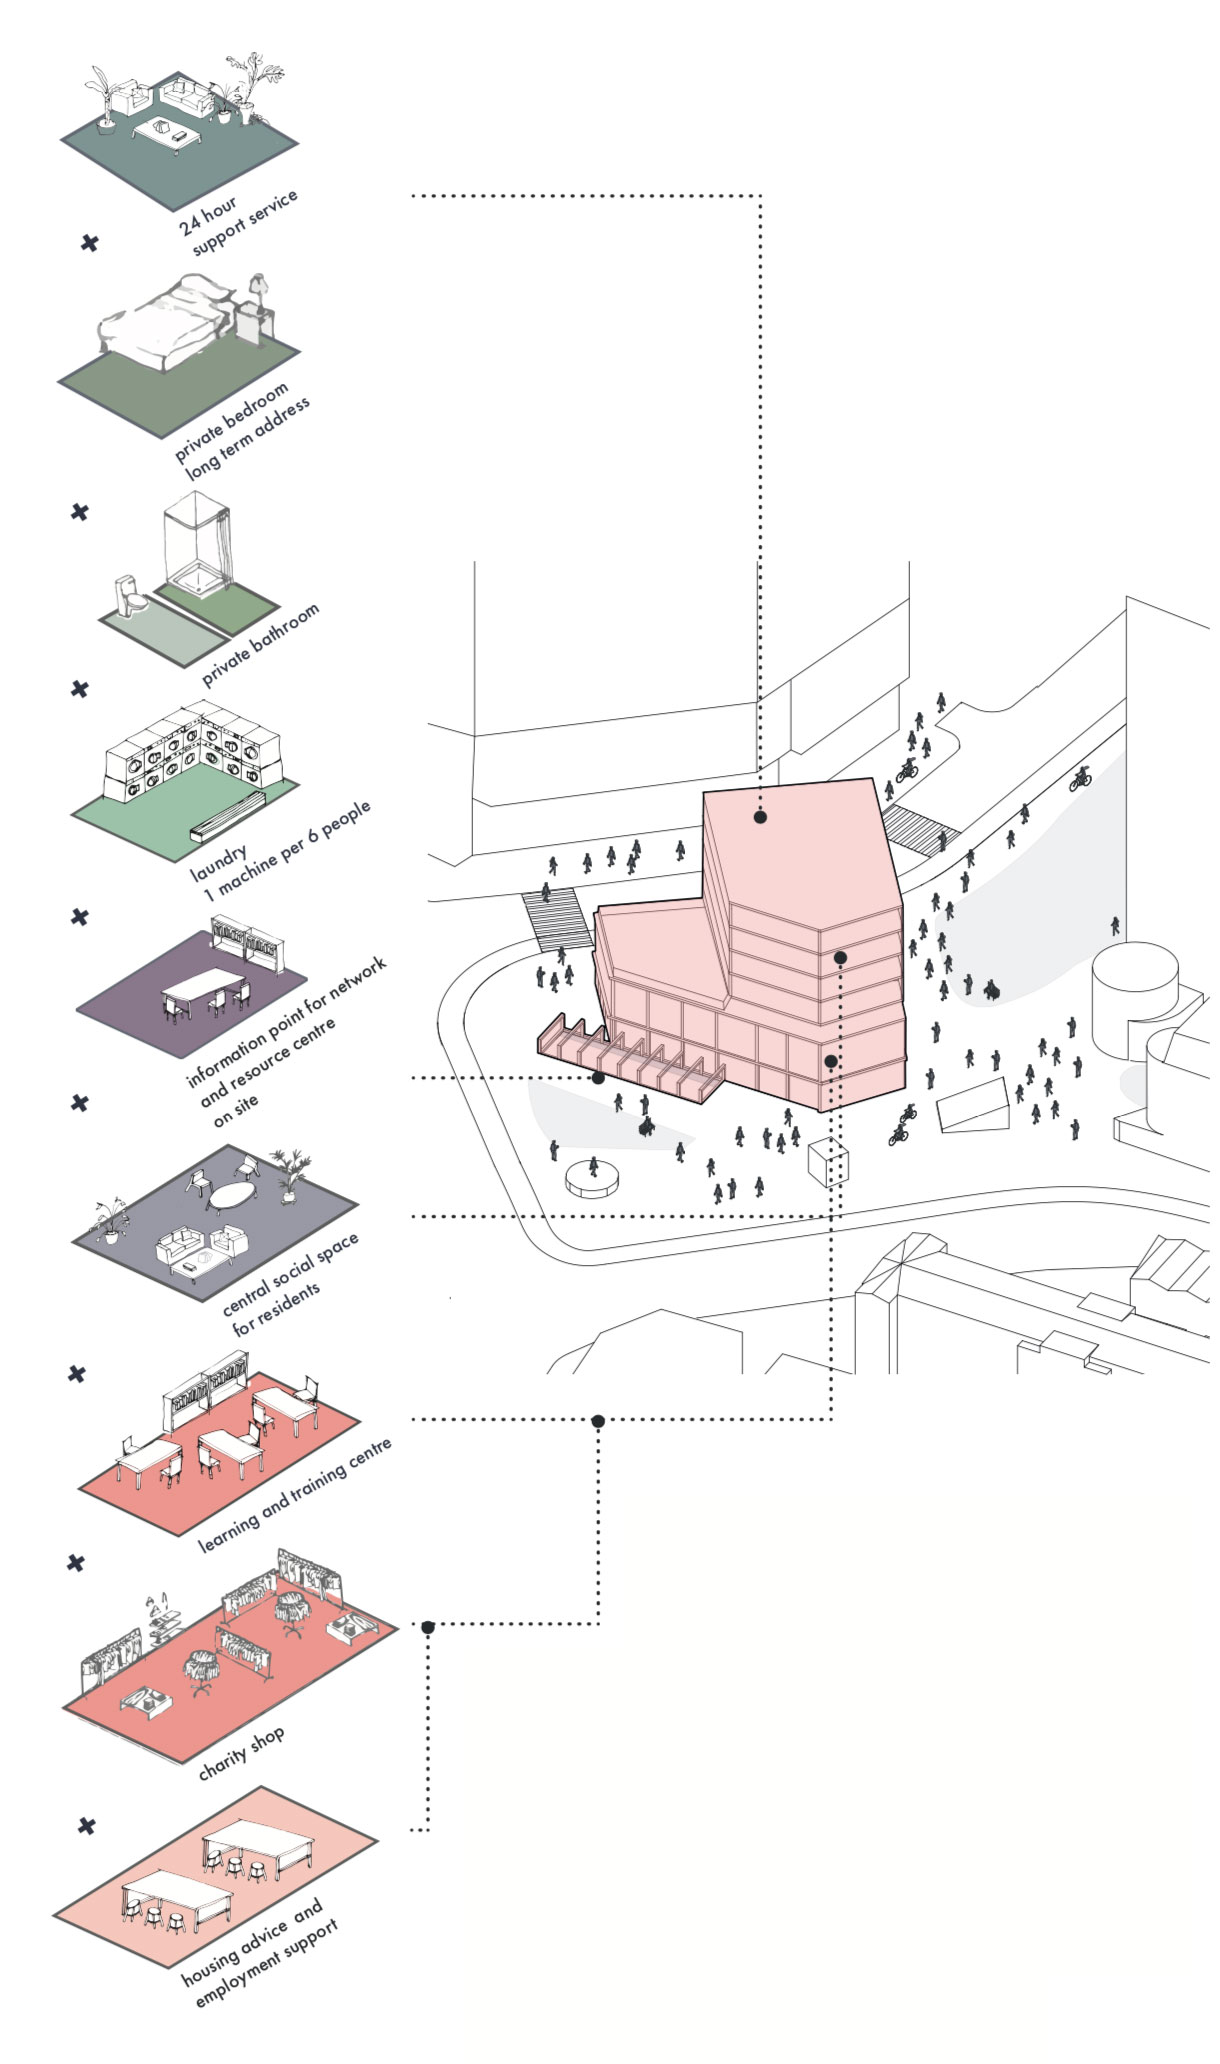 Diagrams showing the range of services supplied in the core building, while an aerial view showing the massing of the central core building on its site above Old Street Underground station. The site was selected for its heavy footfall and because homeless people already make use of the Underground space.